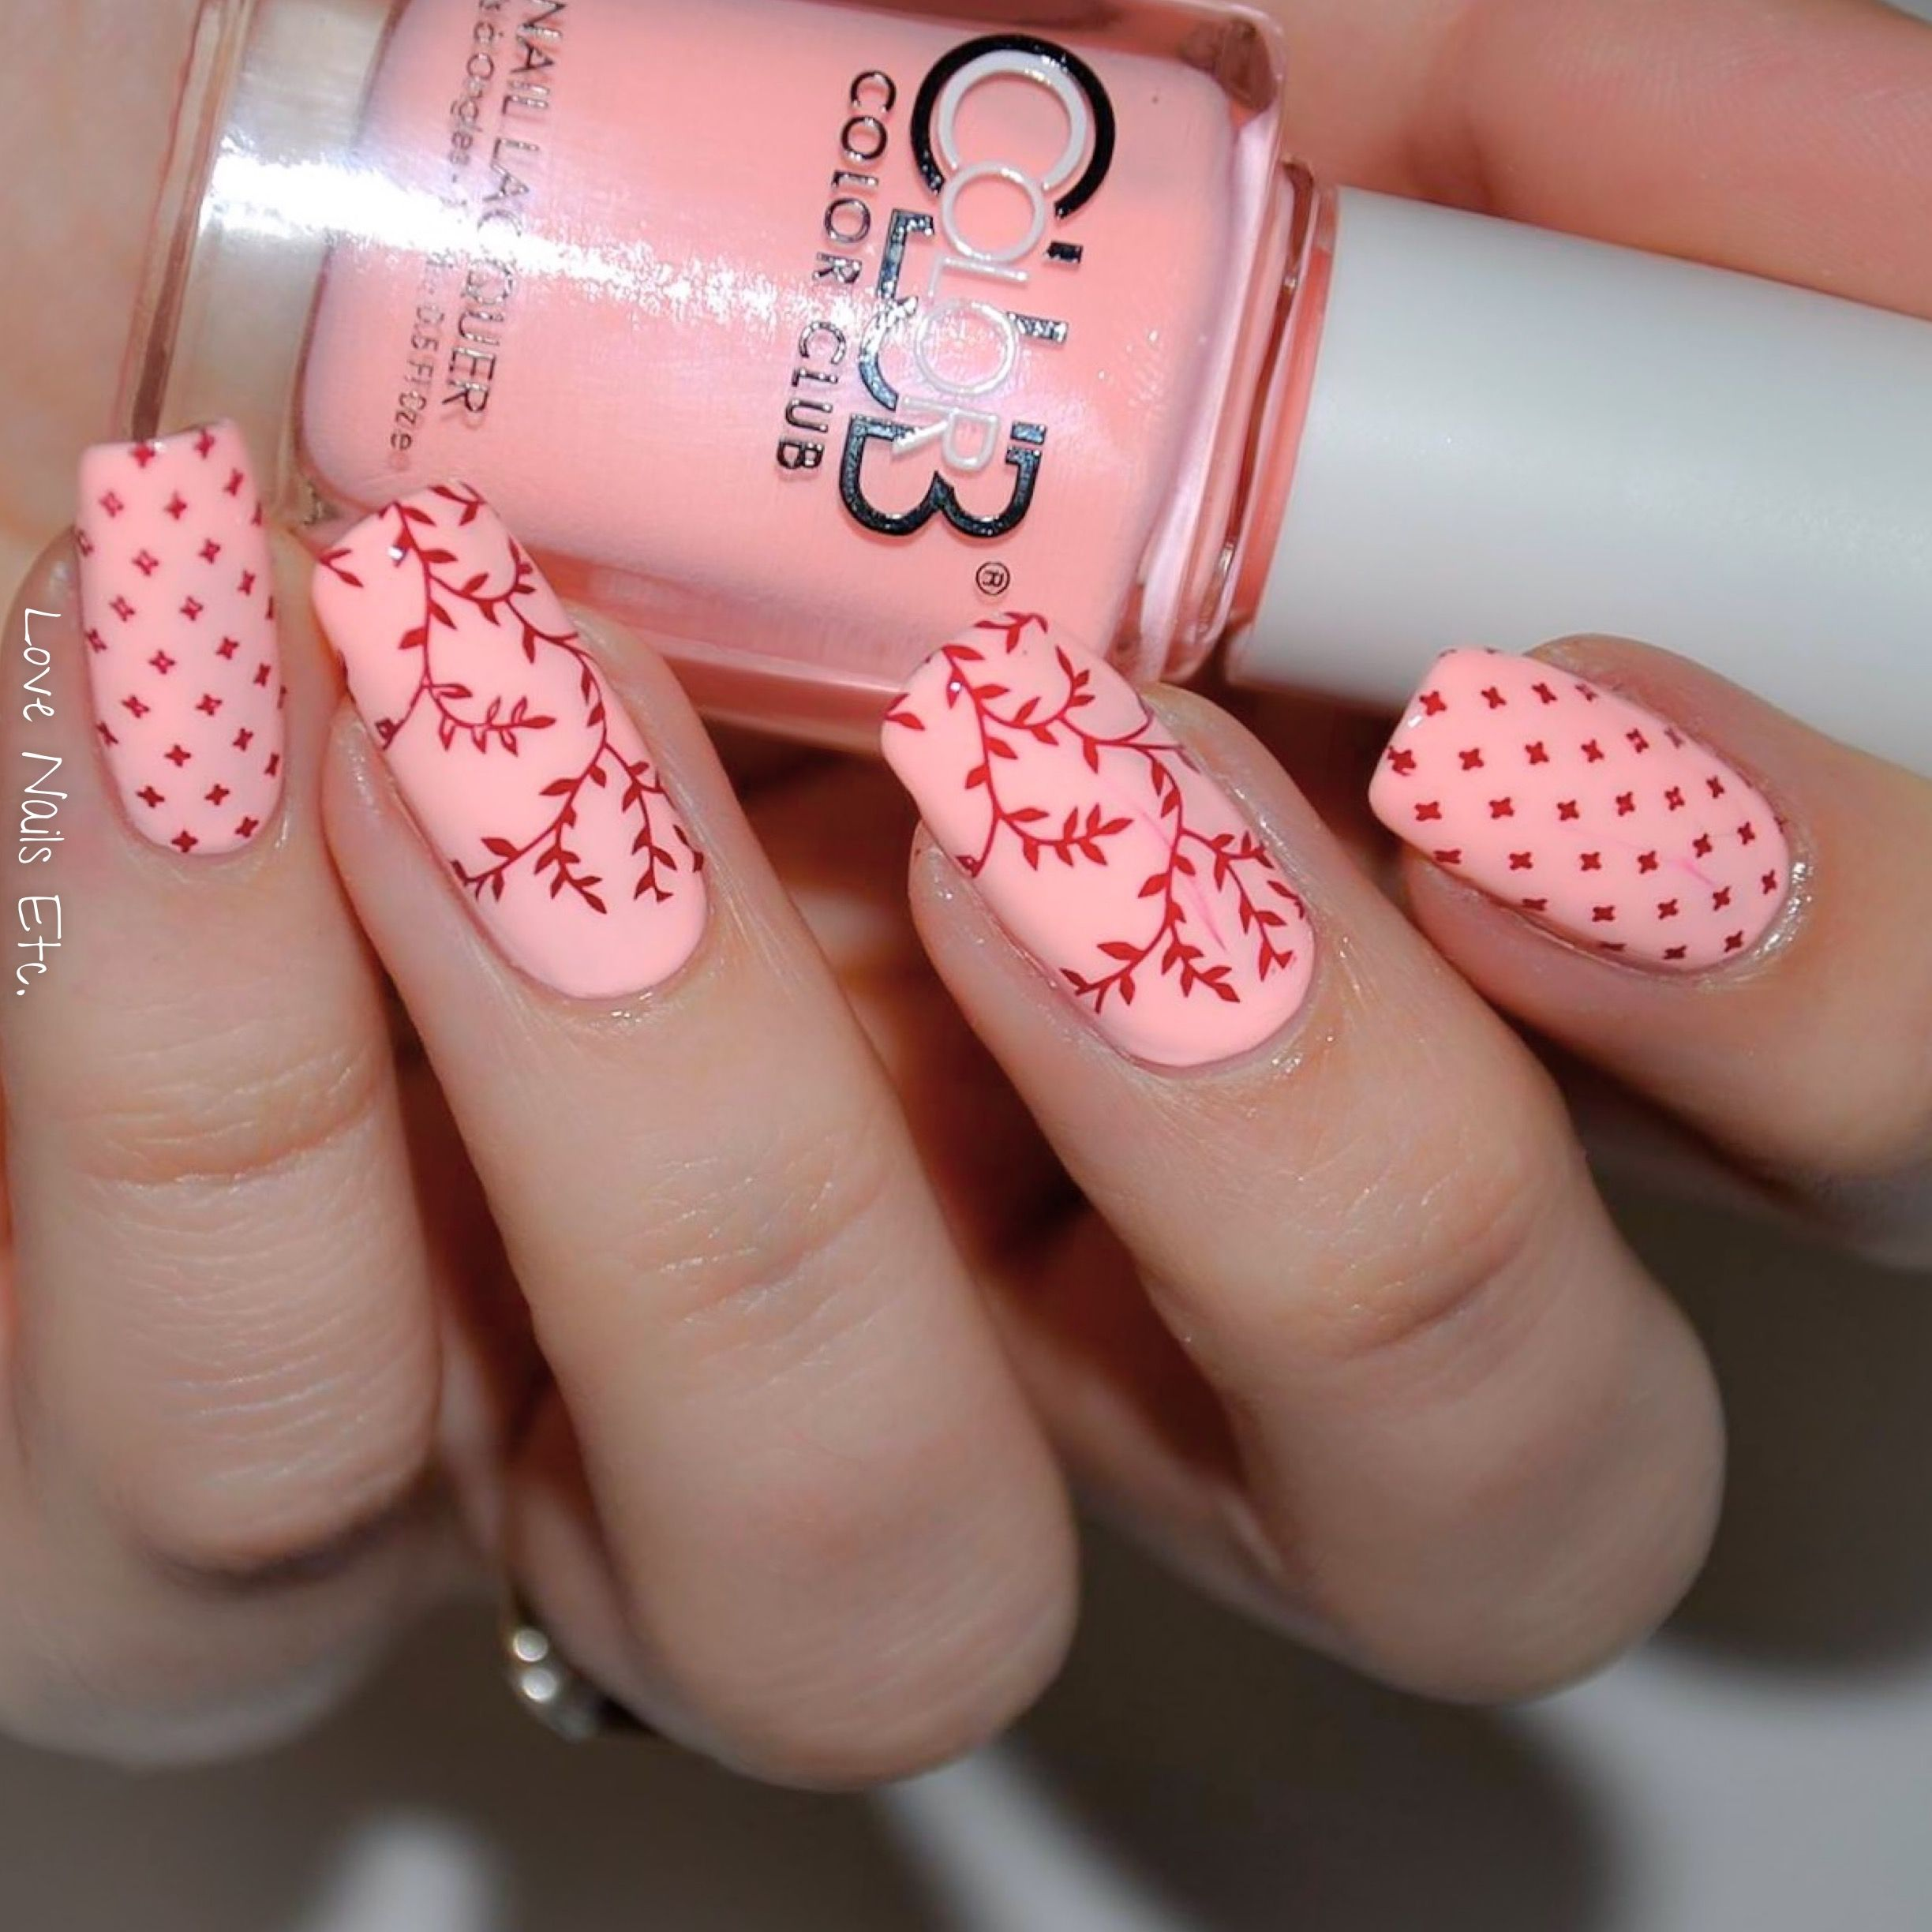 Find this Pin and more on Nail Art St&ing. ÜberChic Beauty st&ing plates (set ... & Ξ -Color Club NEON Pastel \u2013 Hot-hot-hot pants- Ξ | Color club and ...